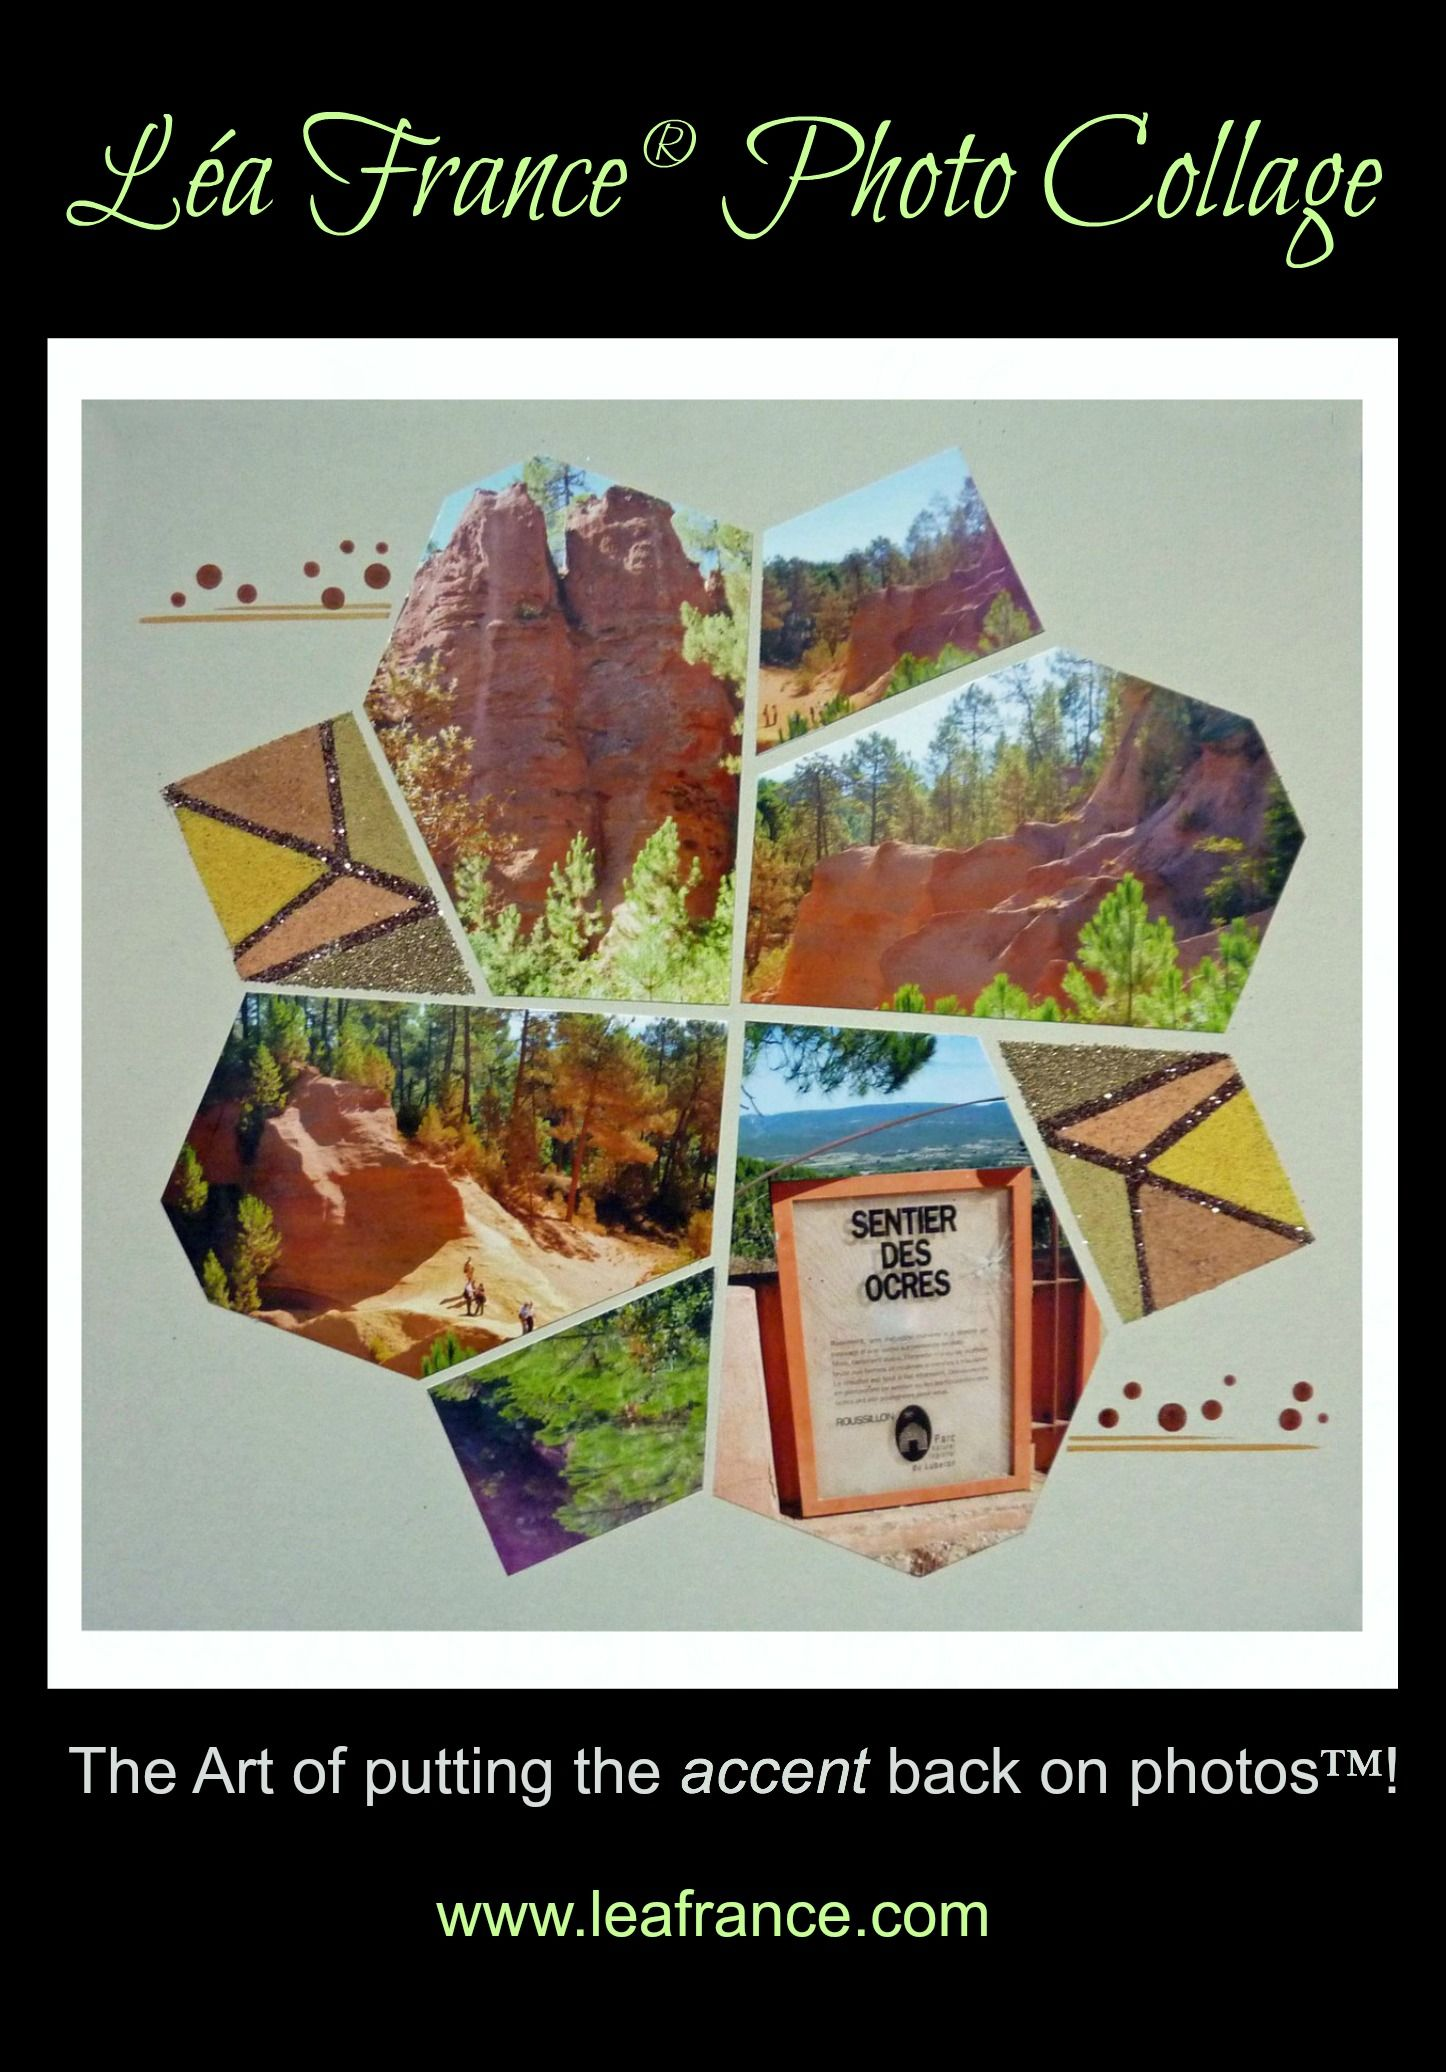 Photo Collage created by Claudine, using Diamond Stencil. #Photos #Collage #Designs #Stencils #PhotoCollage #Art #Scrapbook #Crafts #LeaFrancePhotoCollage